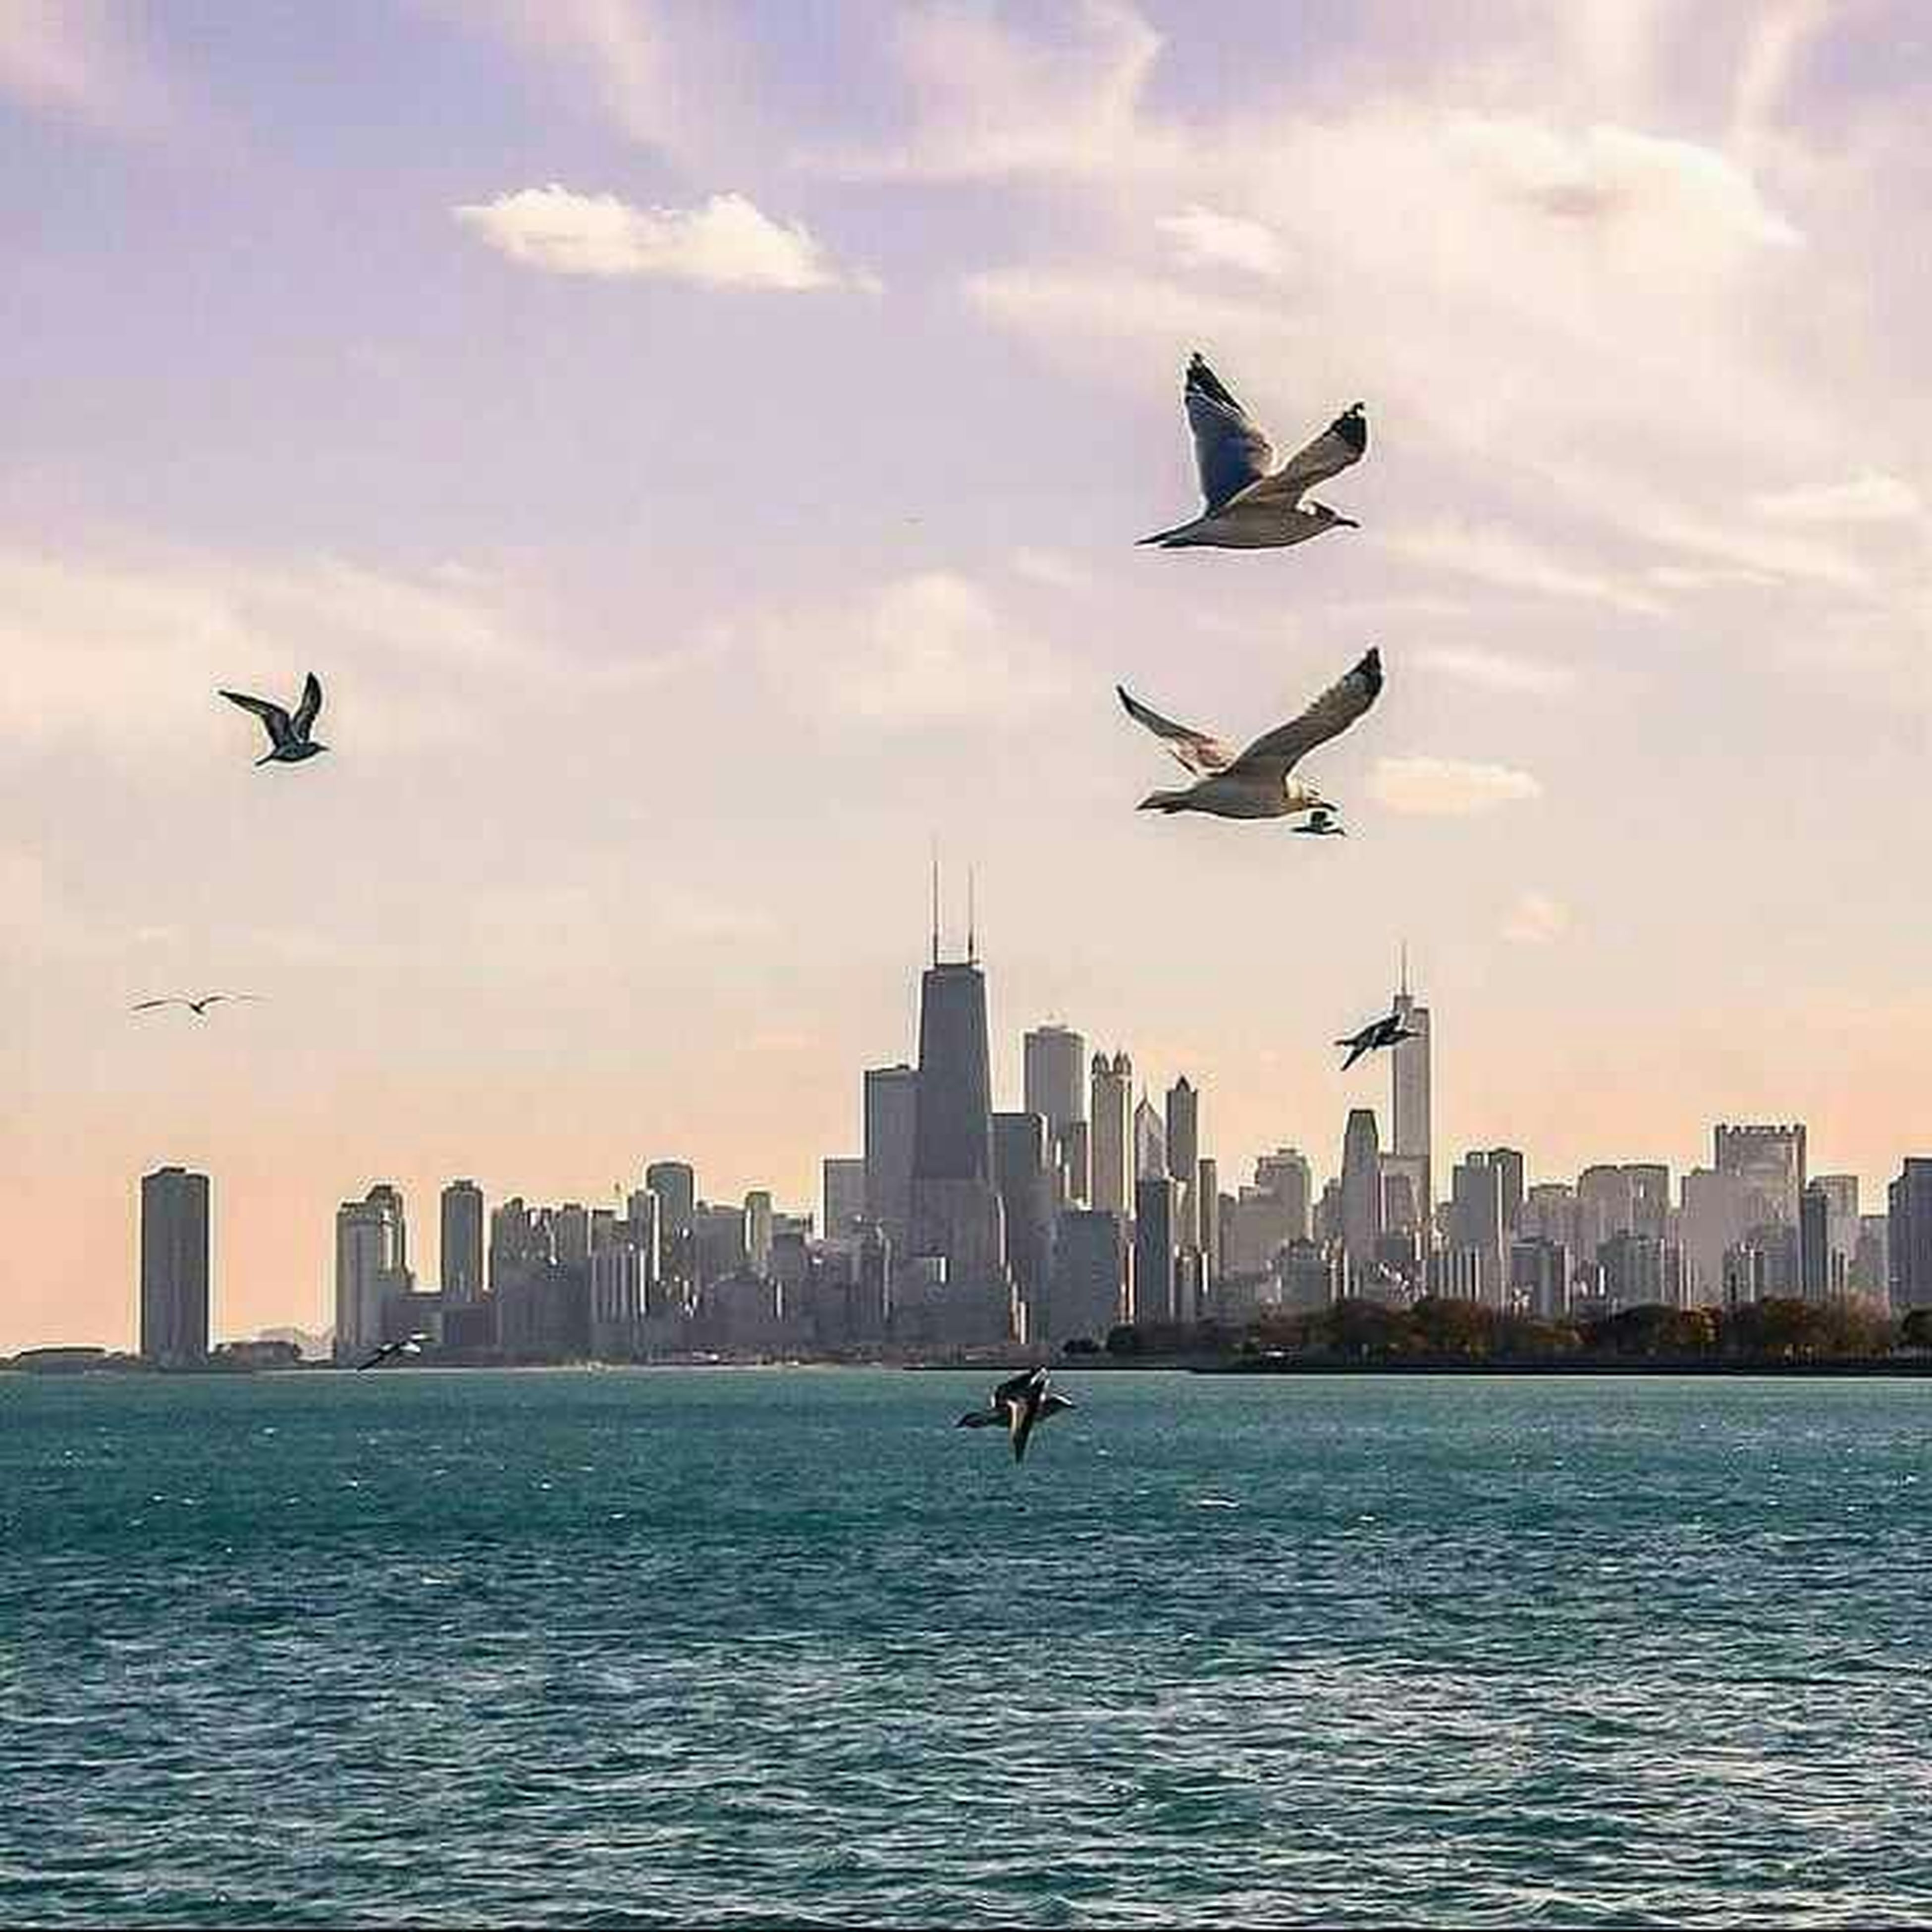 flying, building exterior, waterfront, bird, city, transportation, architecture, mid-air, built structure, sky, water, sea, cityscape, mode of transport, spread wings, travel, nautical vessel, animal themes, cloud - sky, animals in the wild